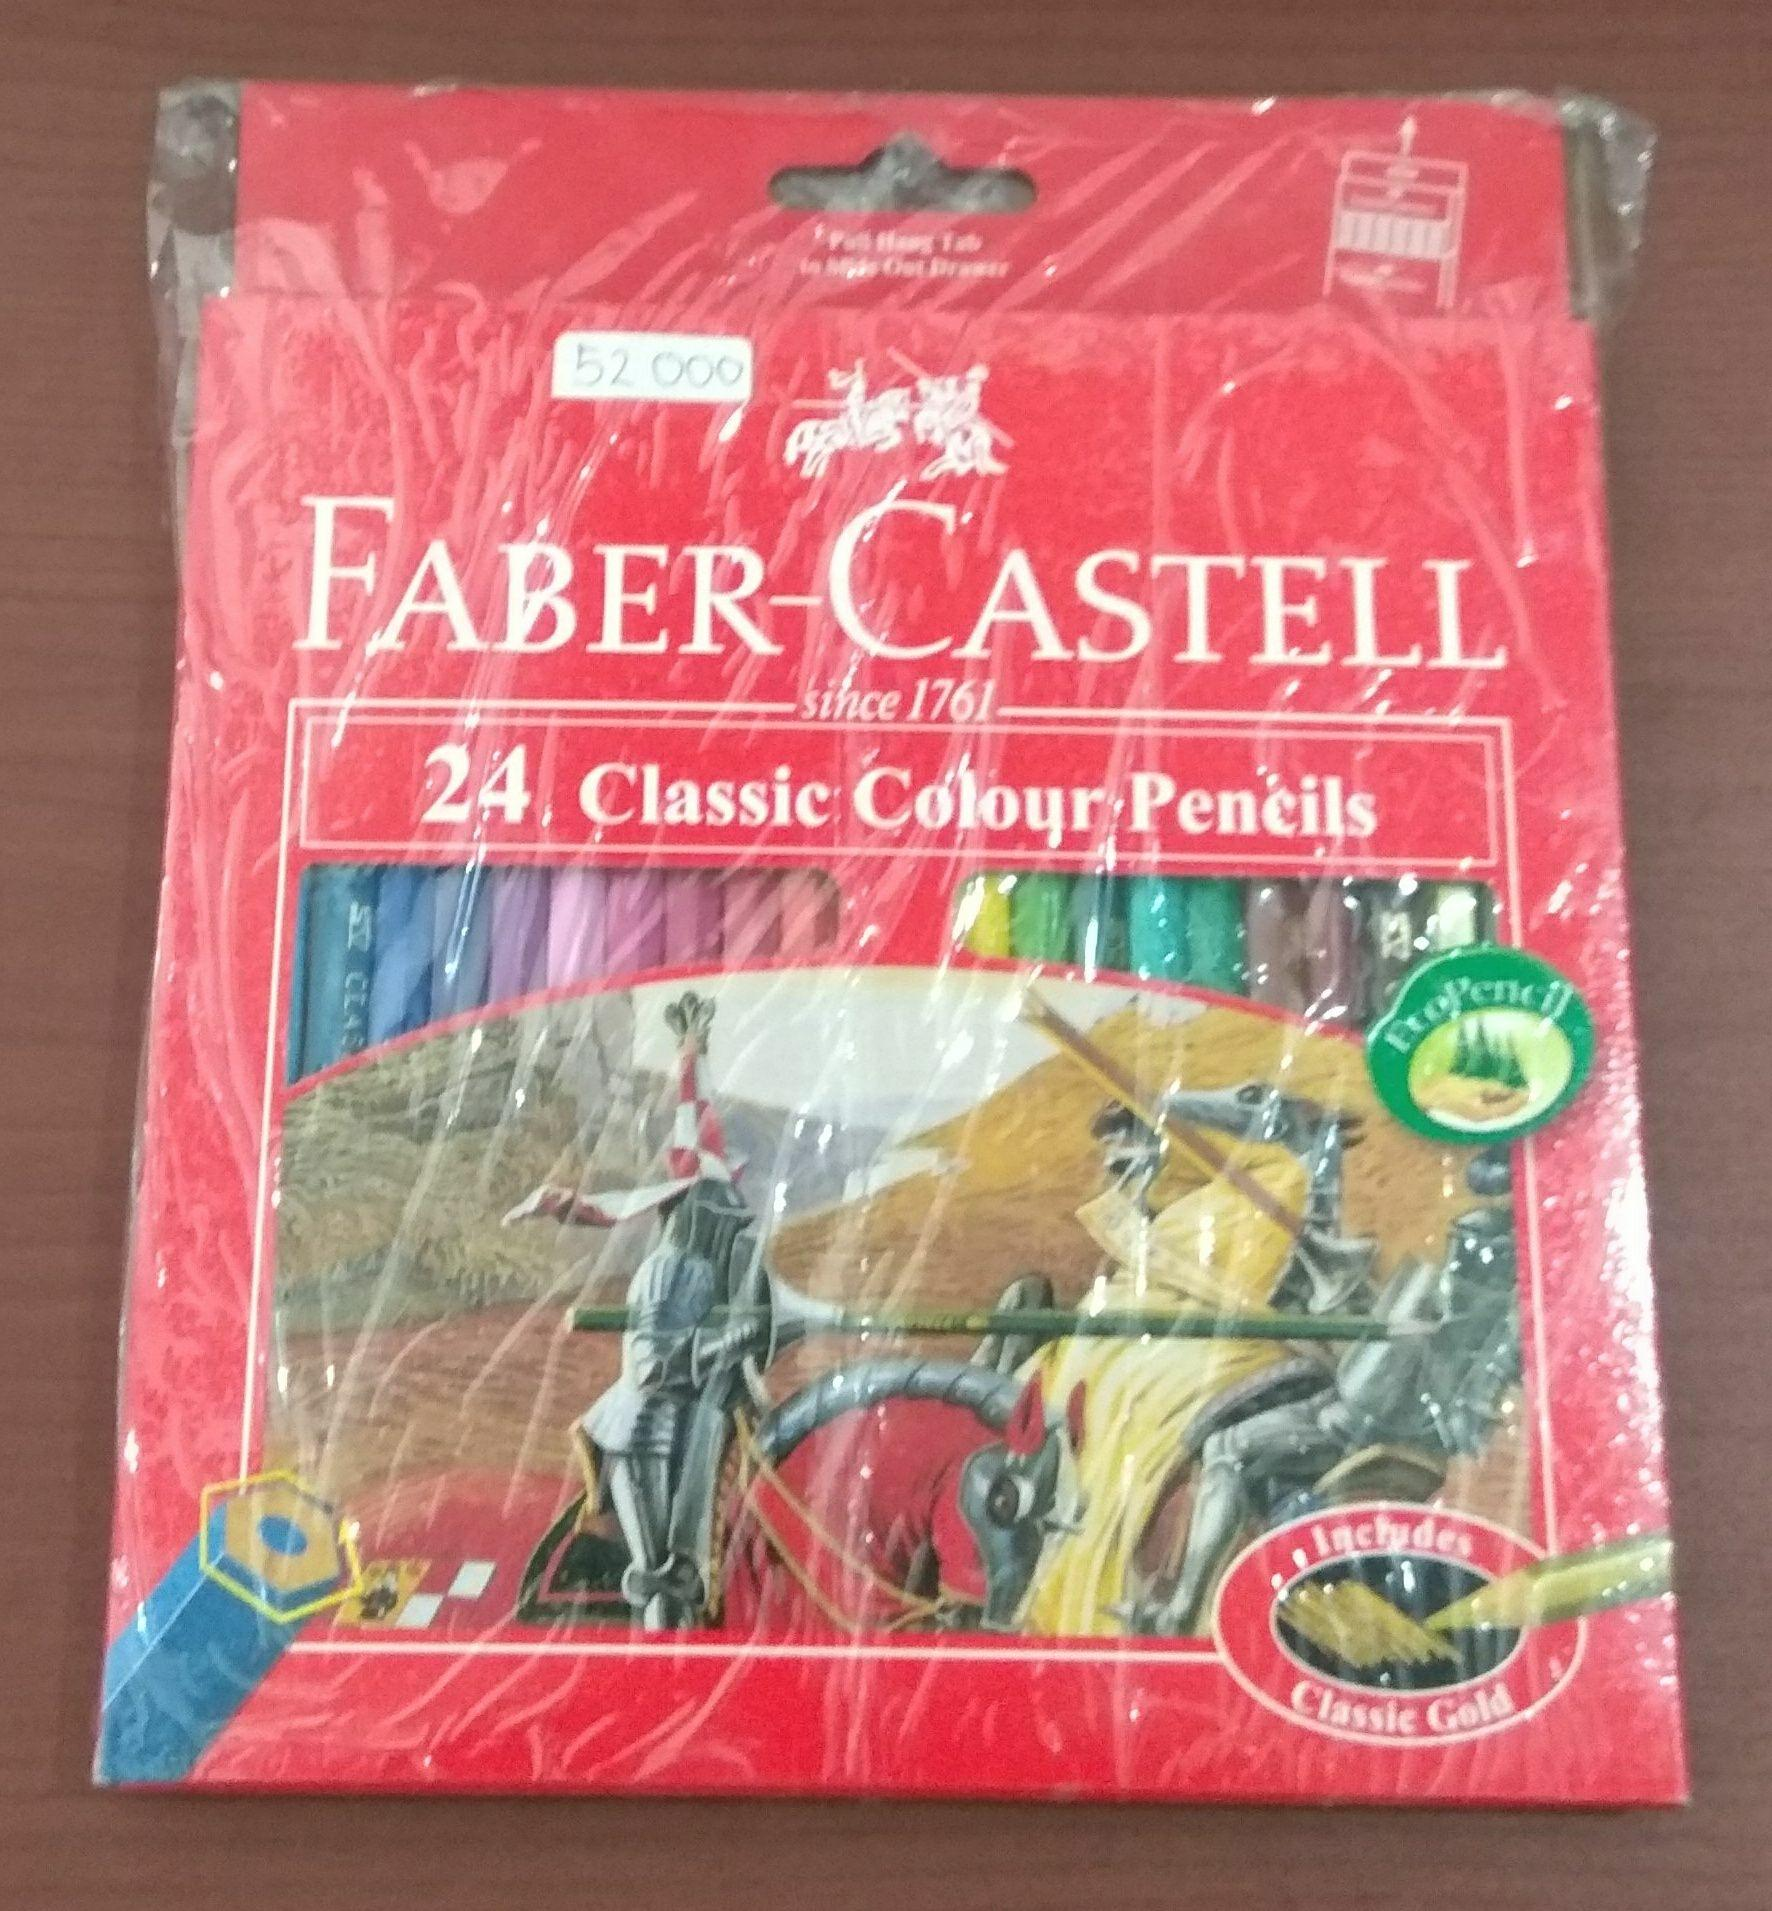 Pensil warna Faber Castell isi 24 Classic